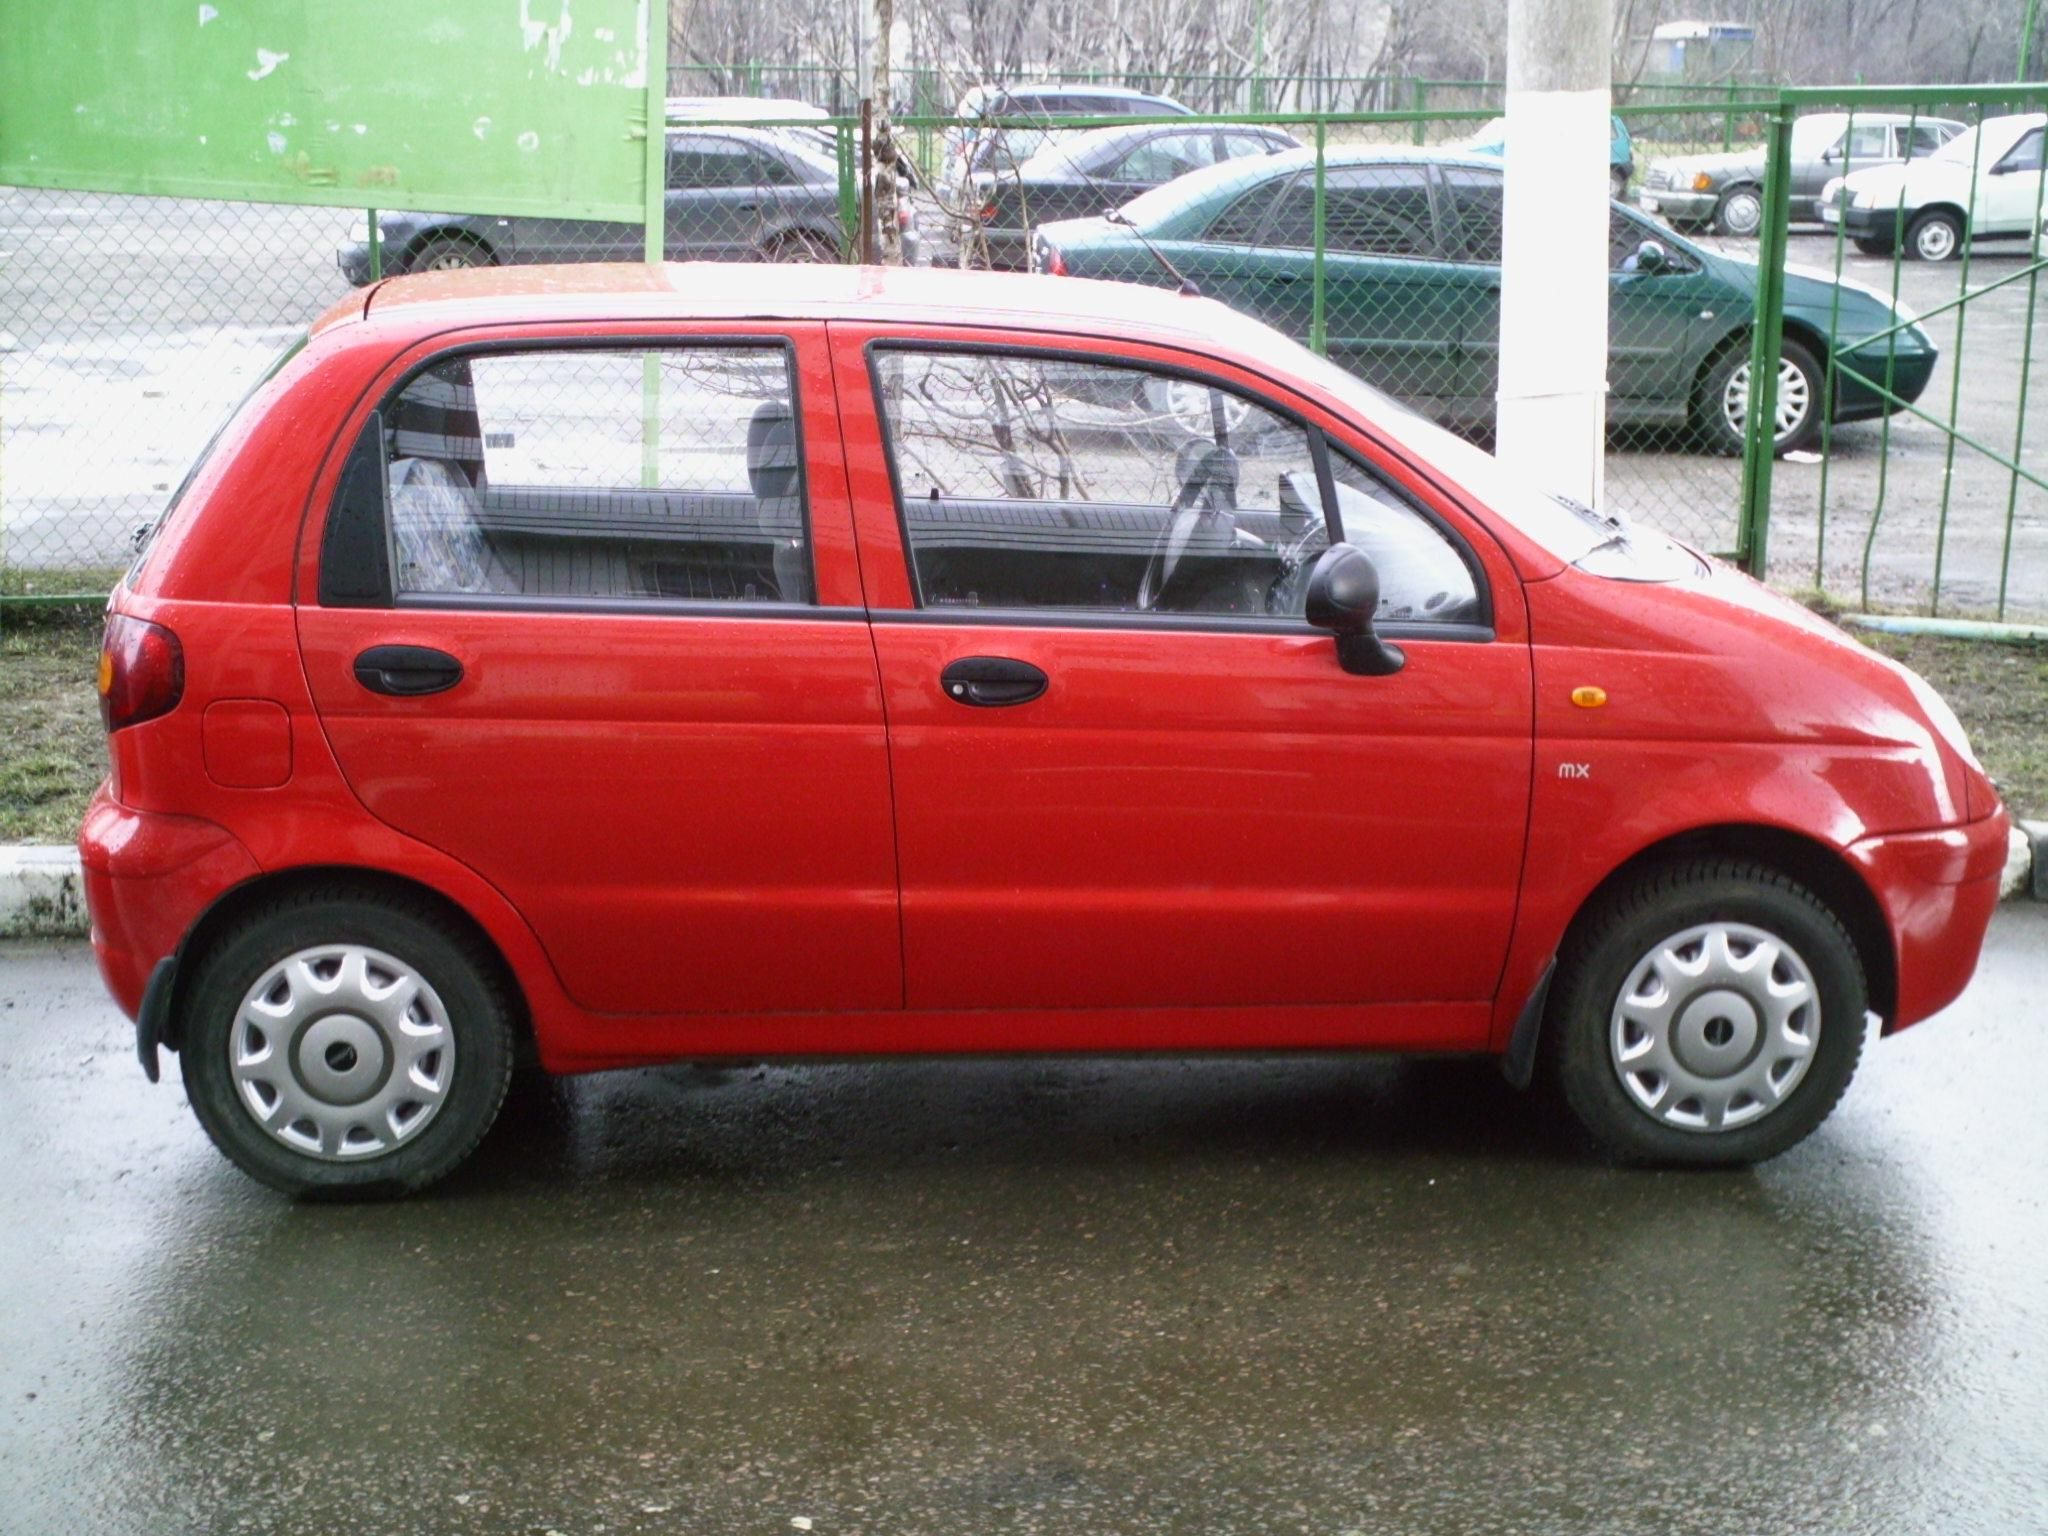 2004 Daewoo Matiz Ii Pictures Information And Specs Auto Manual Wallpaper 8